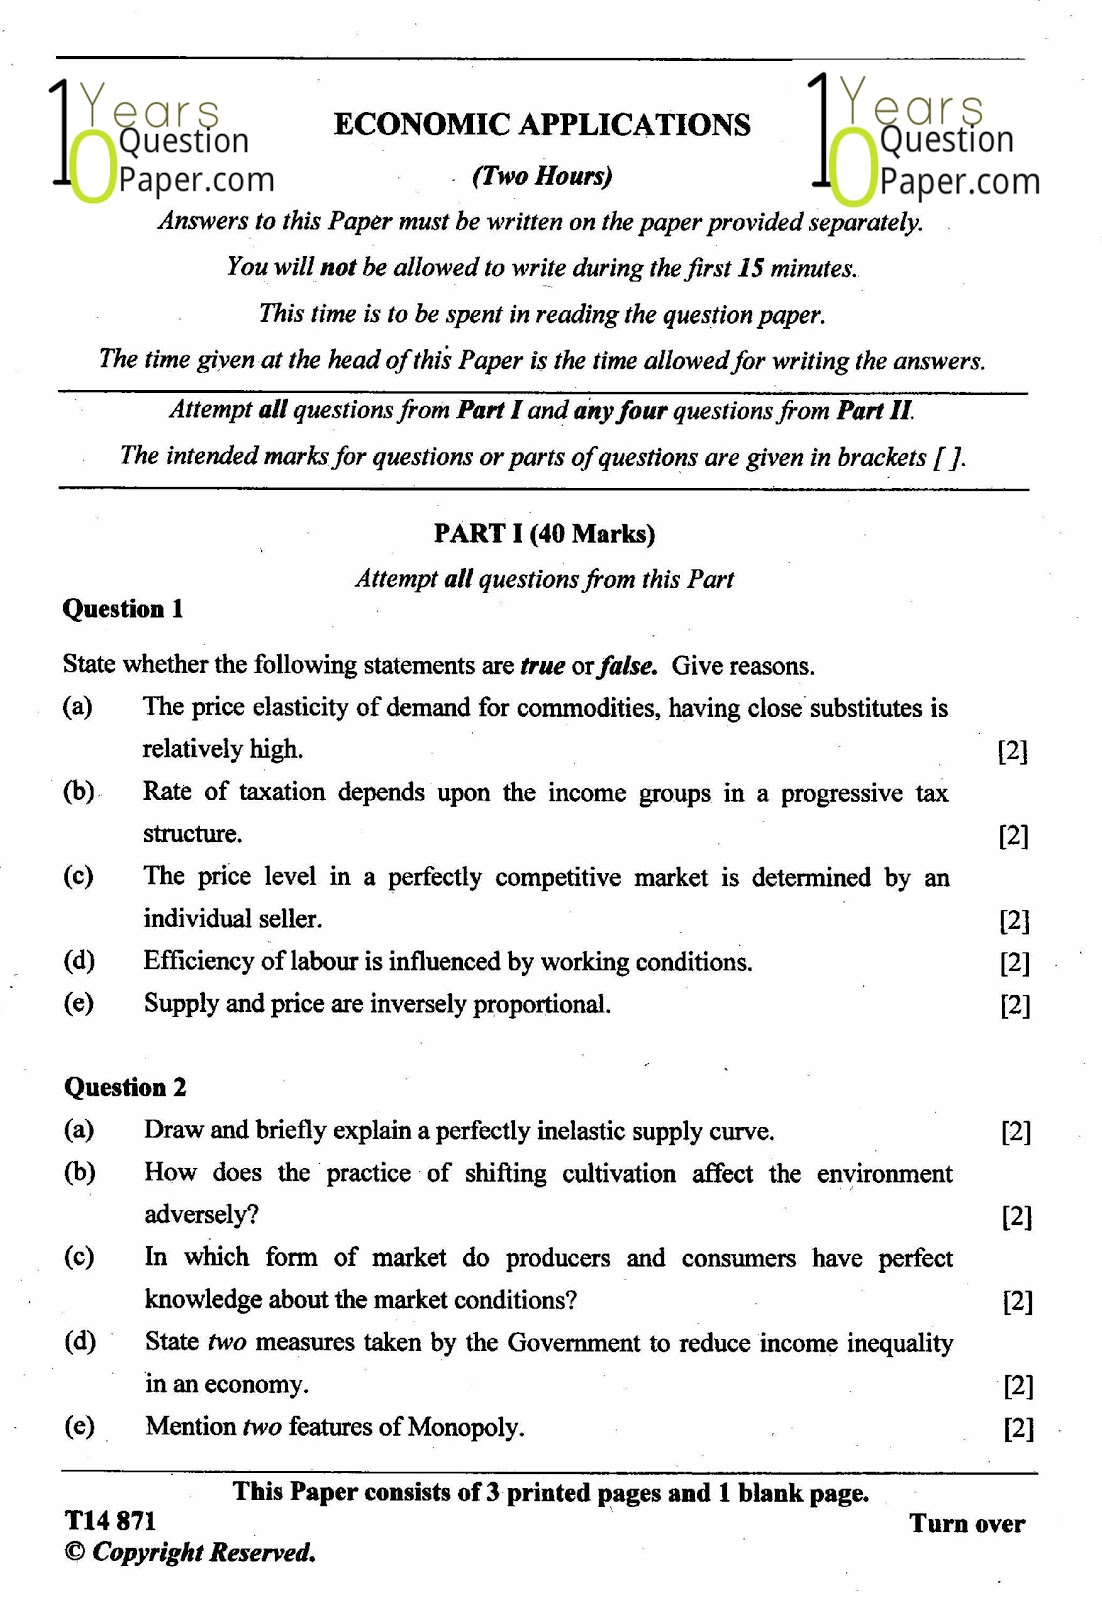 icse 2014 class 10th Economic Application question paper